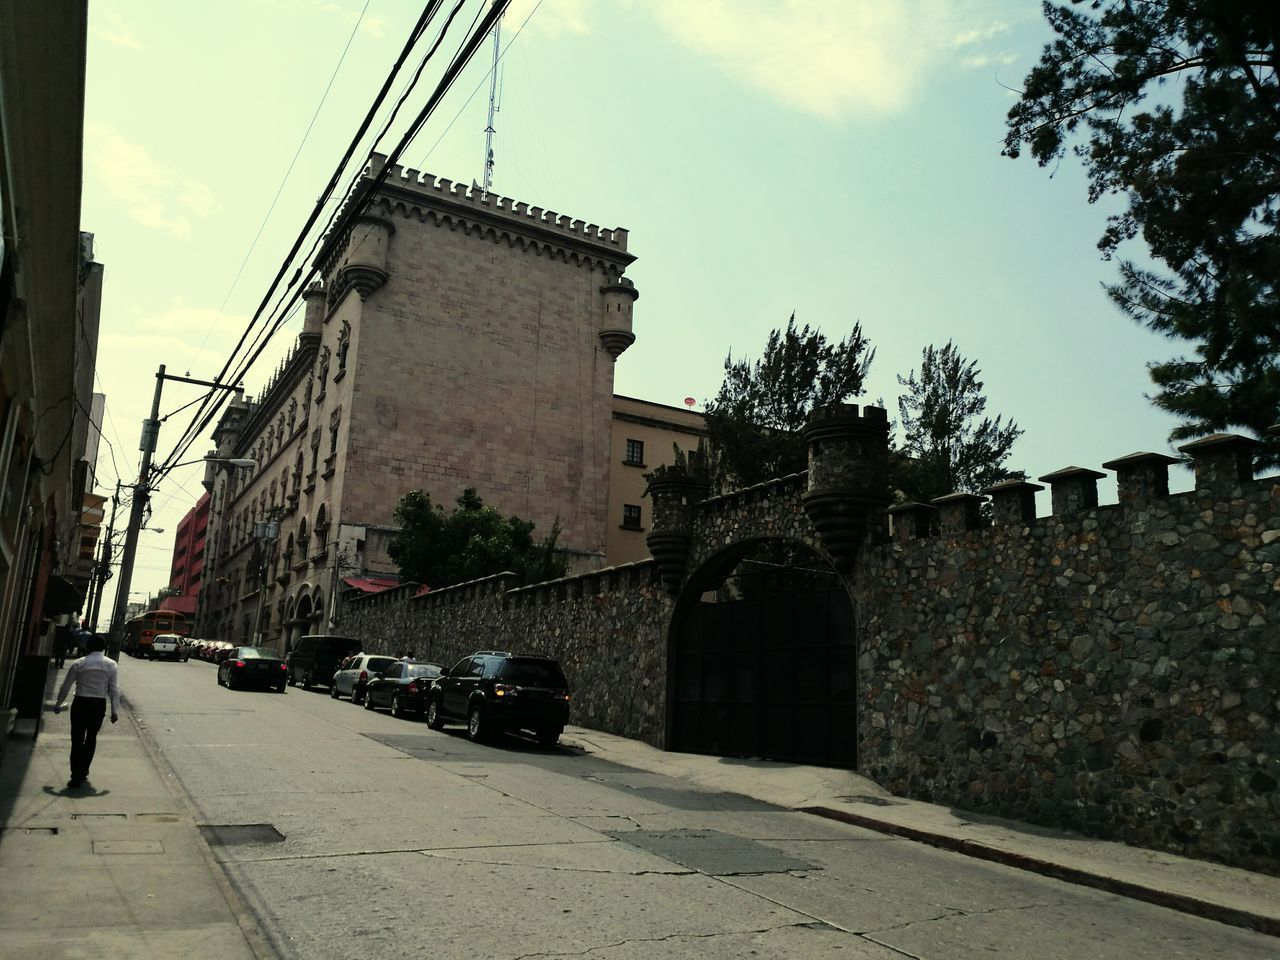 Architecture Built Structure Day Car Transportation Outdoors Building Exterior Tree Sky People City PerhapsYouNeedALittleGuatemala Guatemala GuatemalaVisitala Guatemalasecrets Guatemalaimpresionante